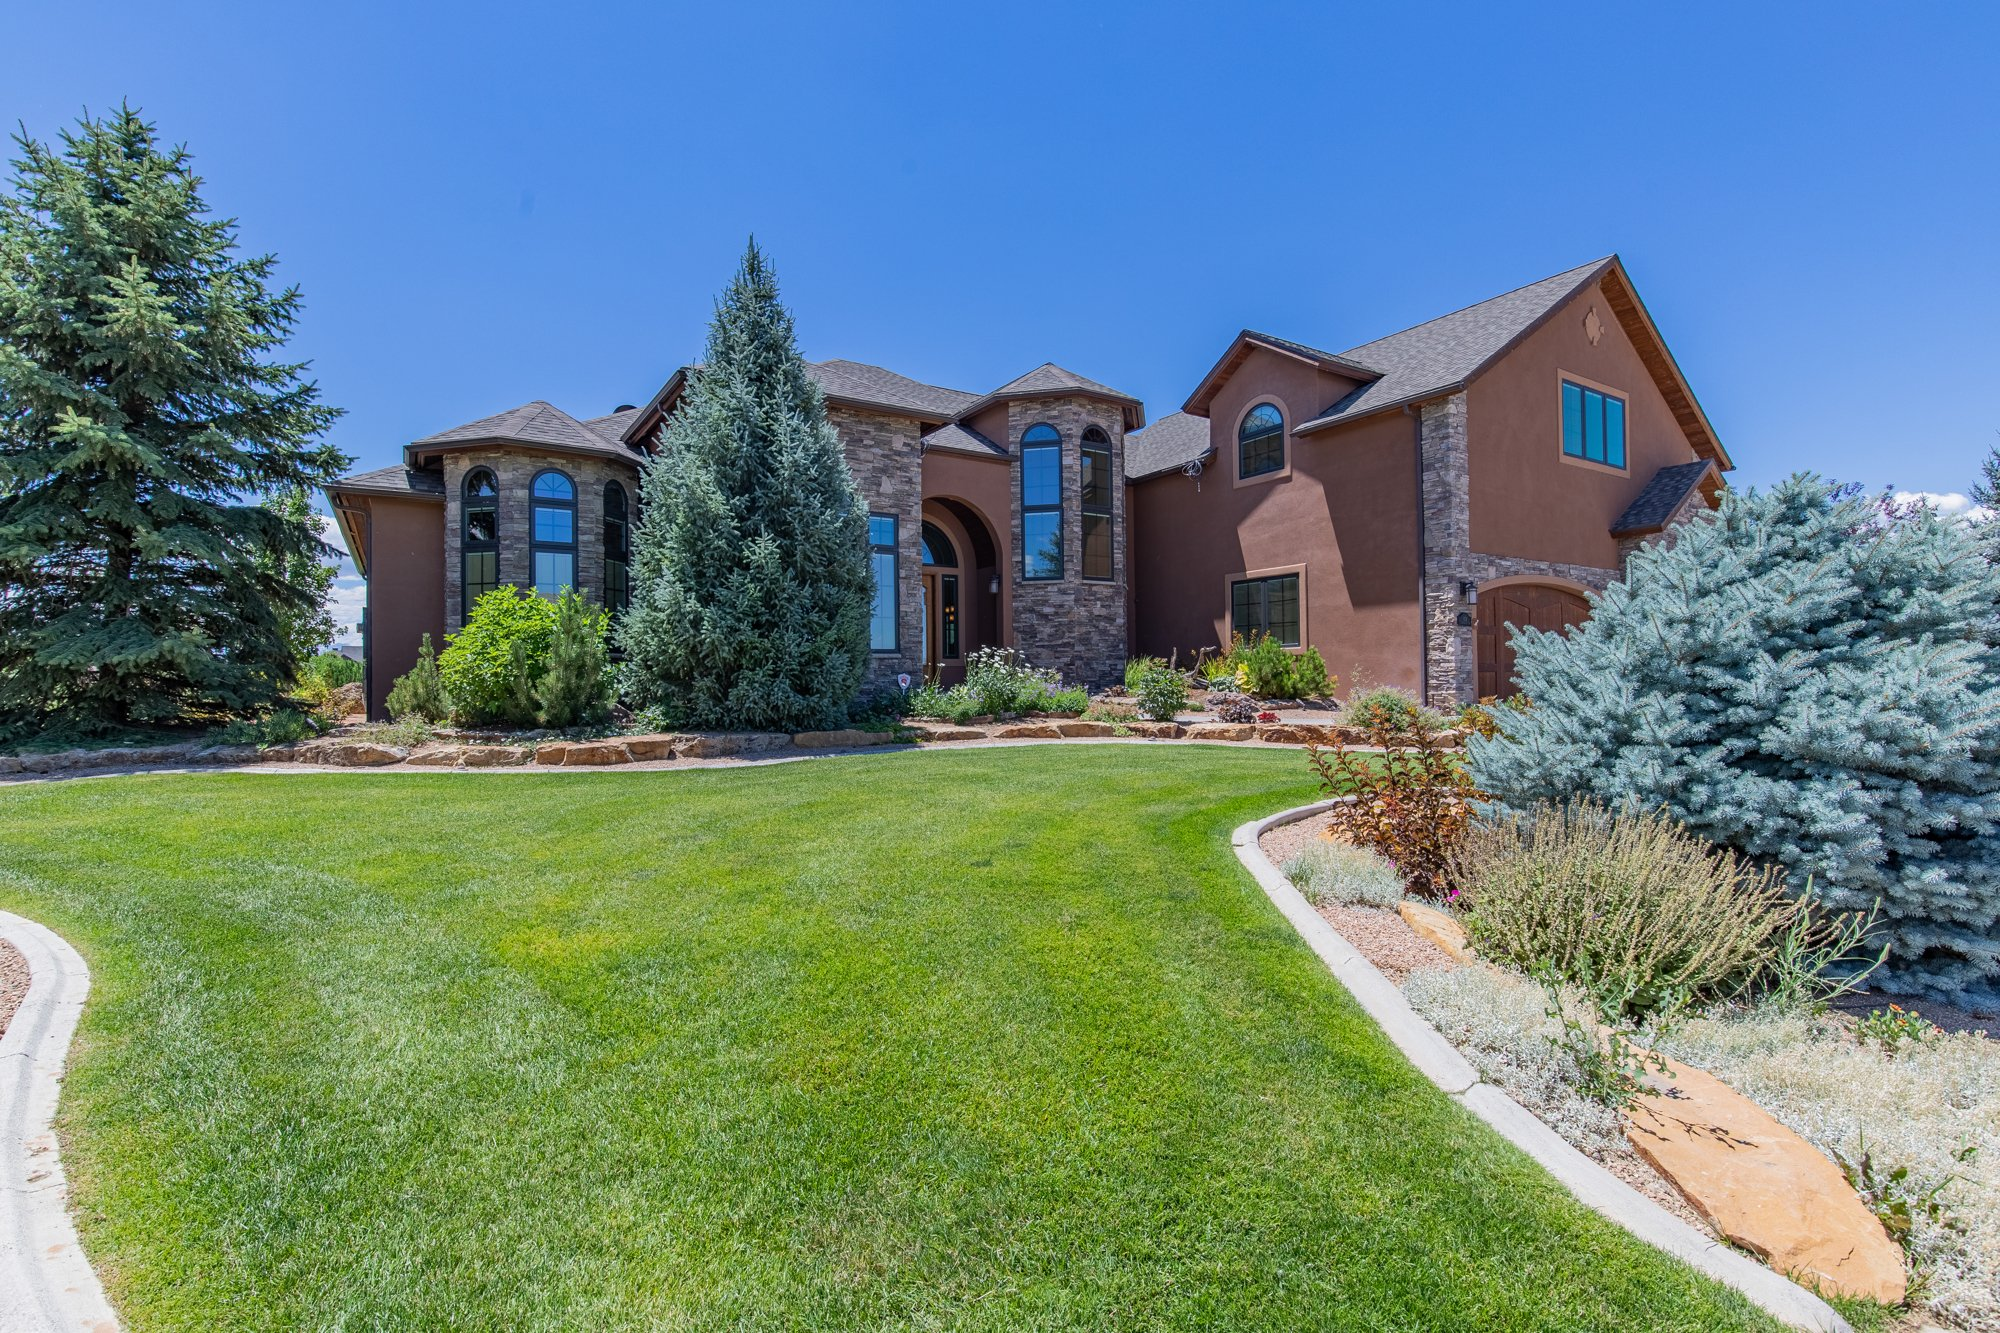 Front of Home with Landscaping - 924 Courthouse Peak Lane Montrose, CO 81403 - Atha Team Golf Luxury Real Estate